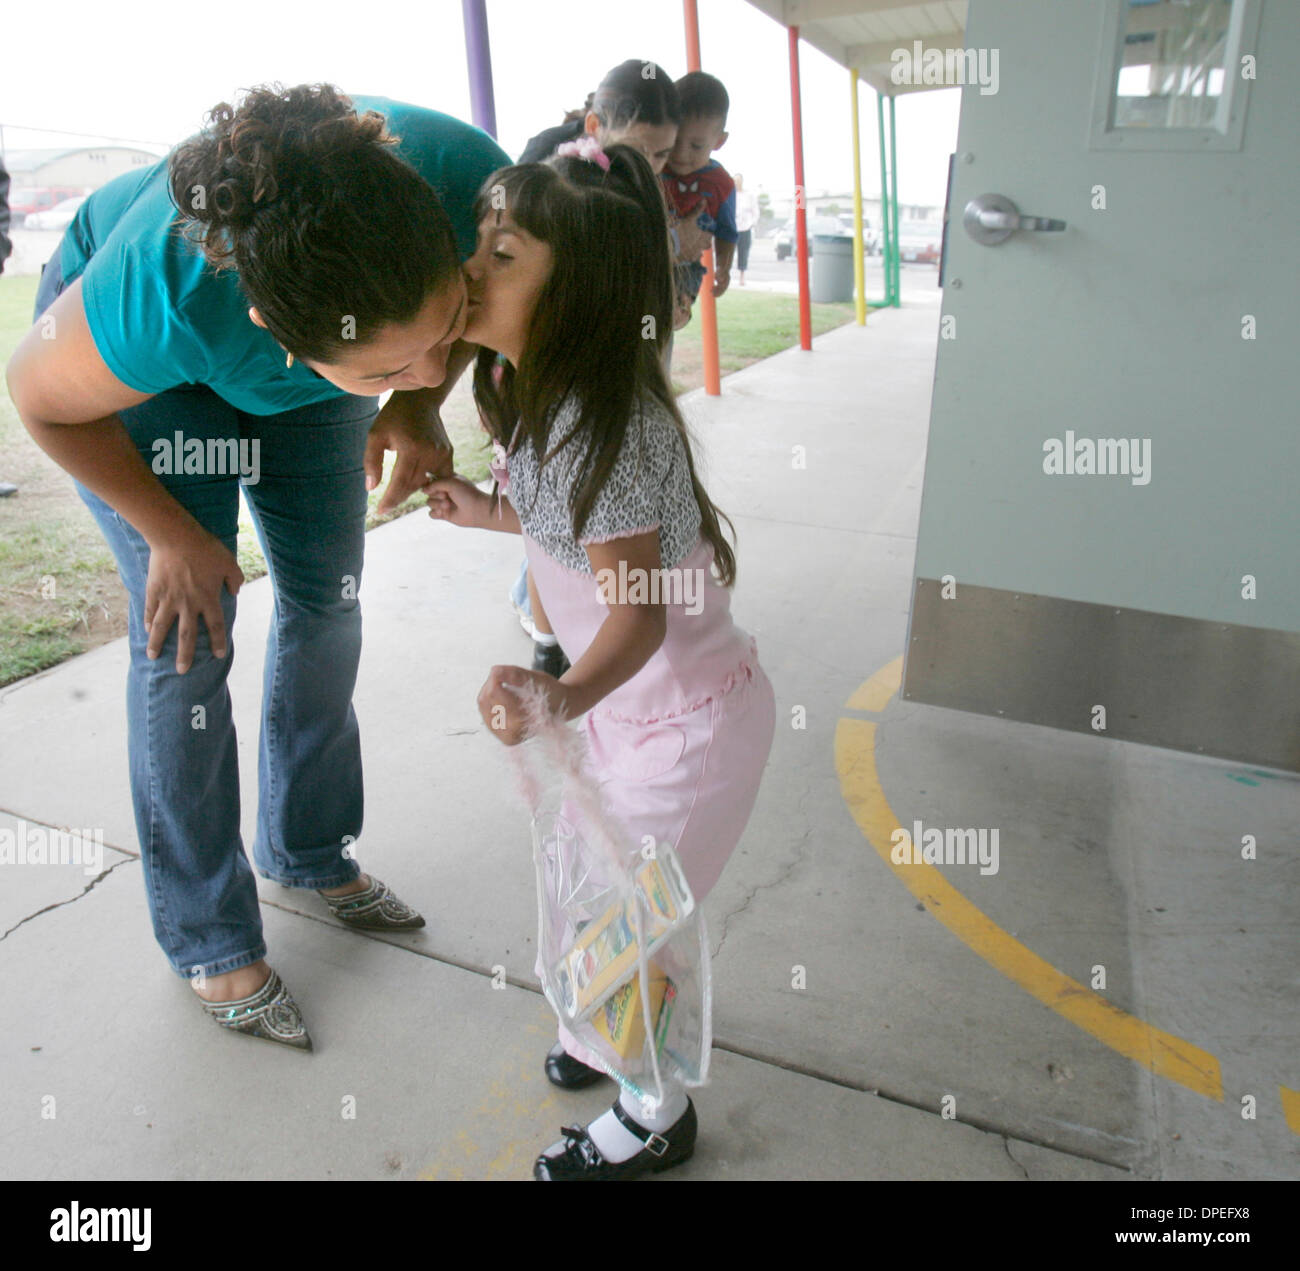 (PUBLISHED 9/8/2006, B-1) September 7, 2006, Imperial Beach, California, USA_Imperial Beach Elementary School student MAYOLA MONTES, age 4, kisses her mother MARIA MONTES goodbye before heading into the pre-kindergarten classroom.  Six communities in the county are sharing 0 million over the next five years to increase the number of four-year-olds in preschool, targeting low-income - Stock Image